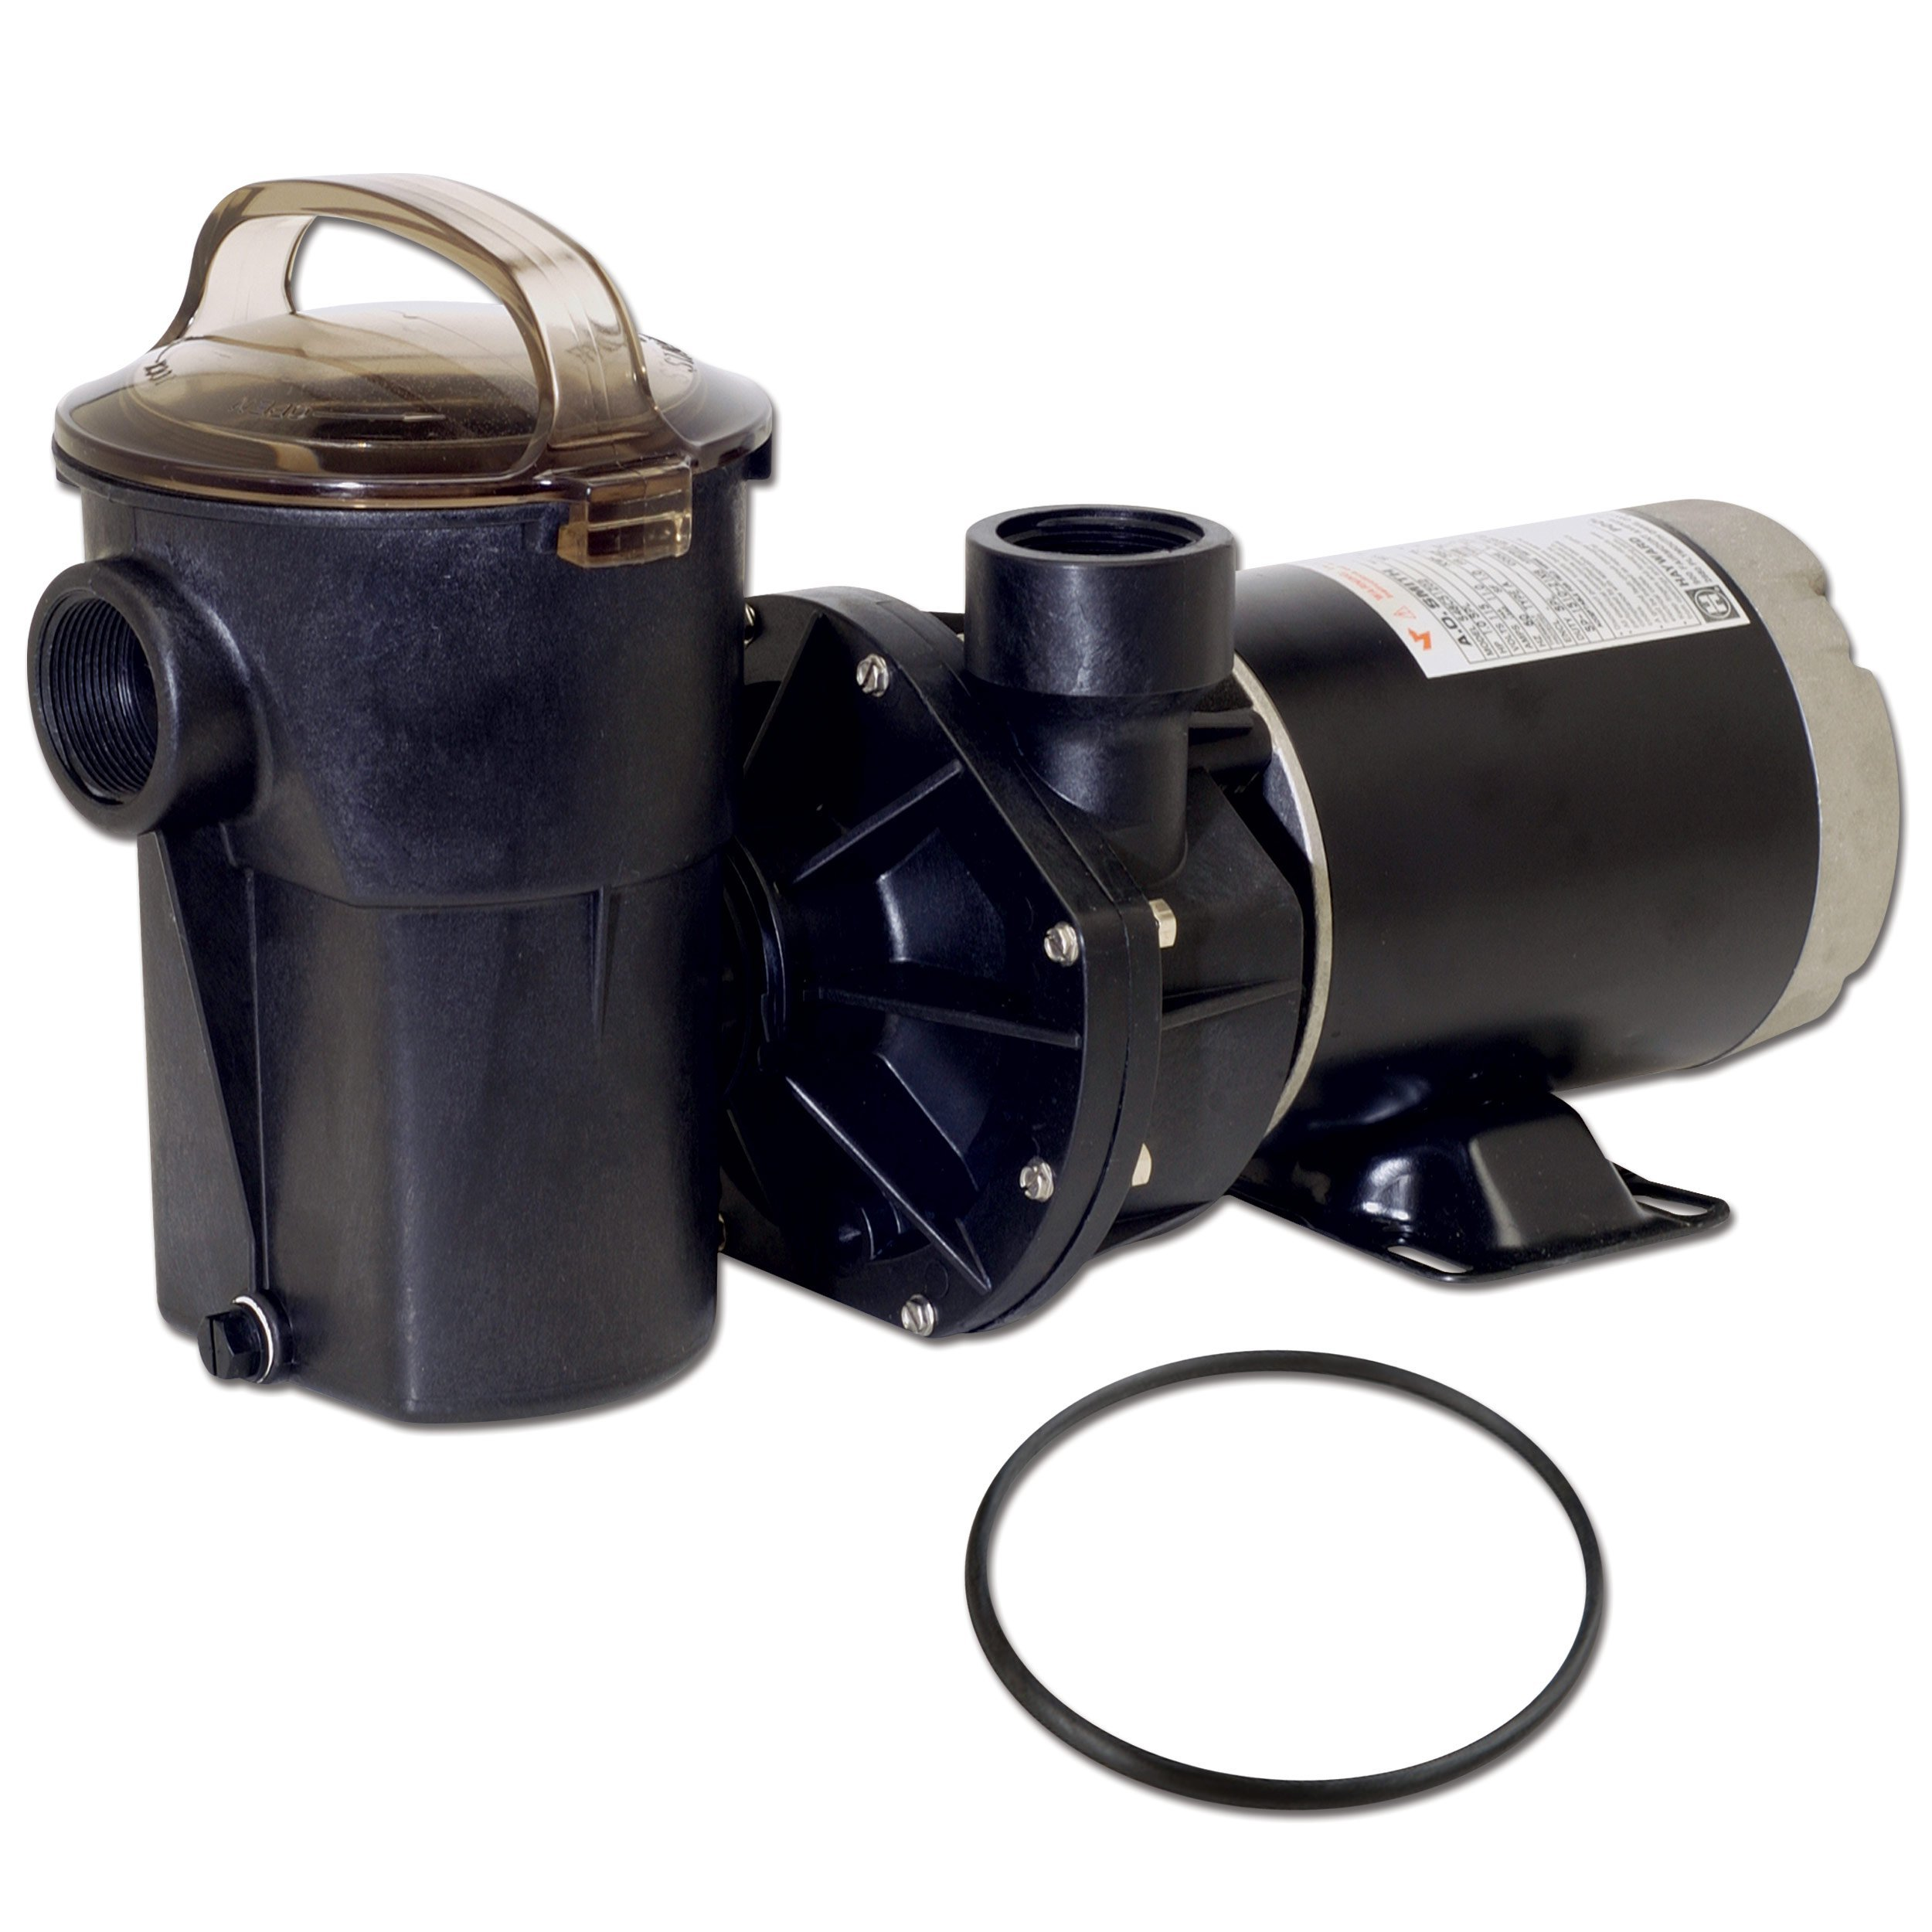 Hayward SP1580X15 Power-Flo LX Series 1-1/2-Horsepower Above-Ground Pool Pump with Cord and Replacement Lid O-Ring - 2 Item Bundle by In The Swim (Image #1)